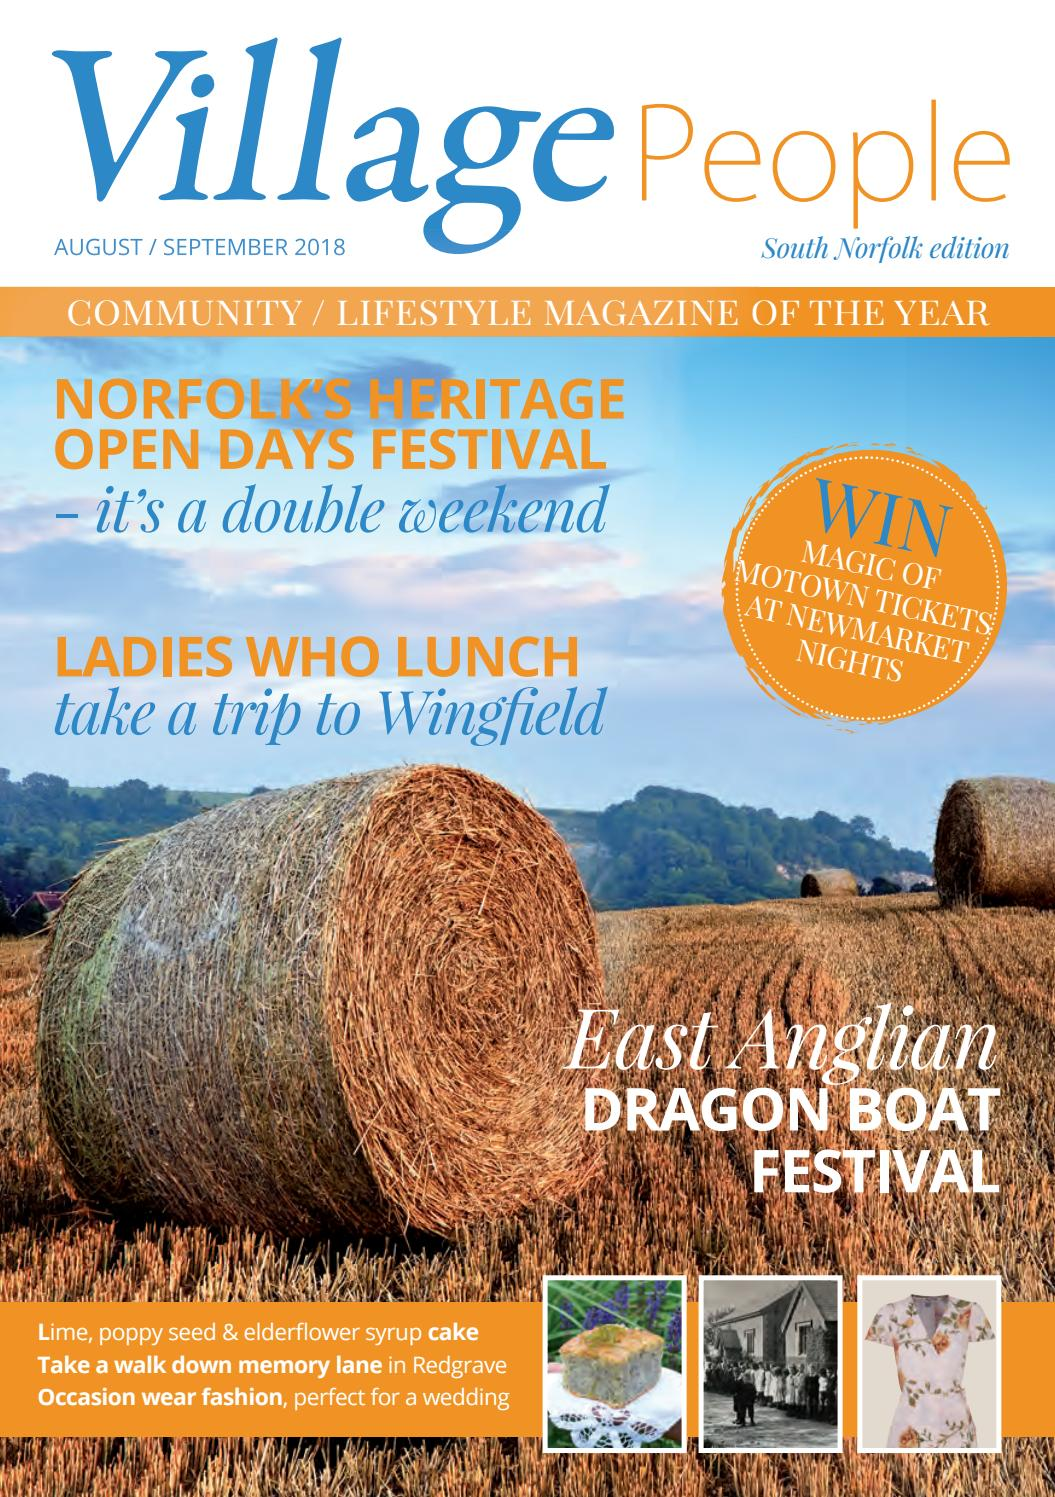 Village People South Norfolk edition – August / September